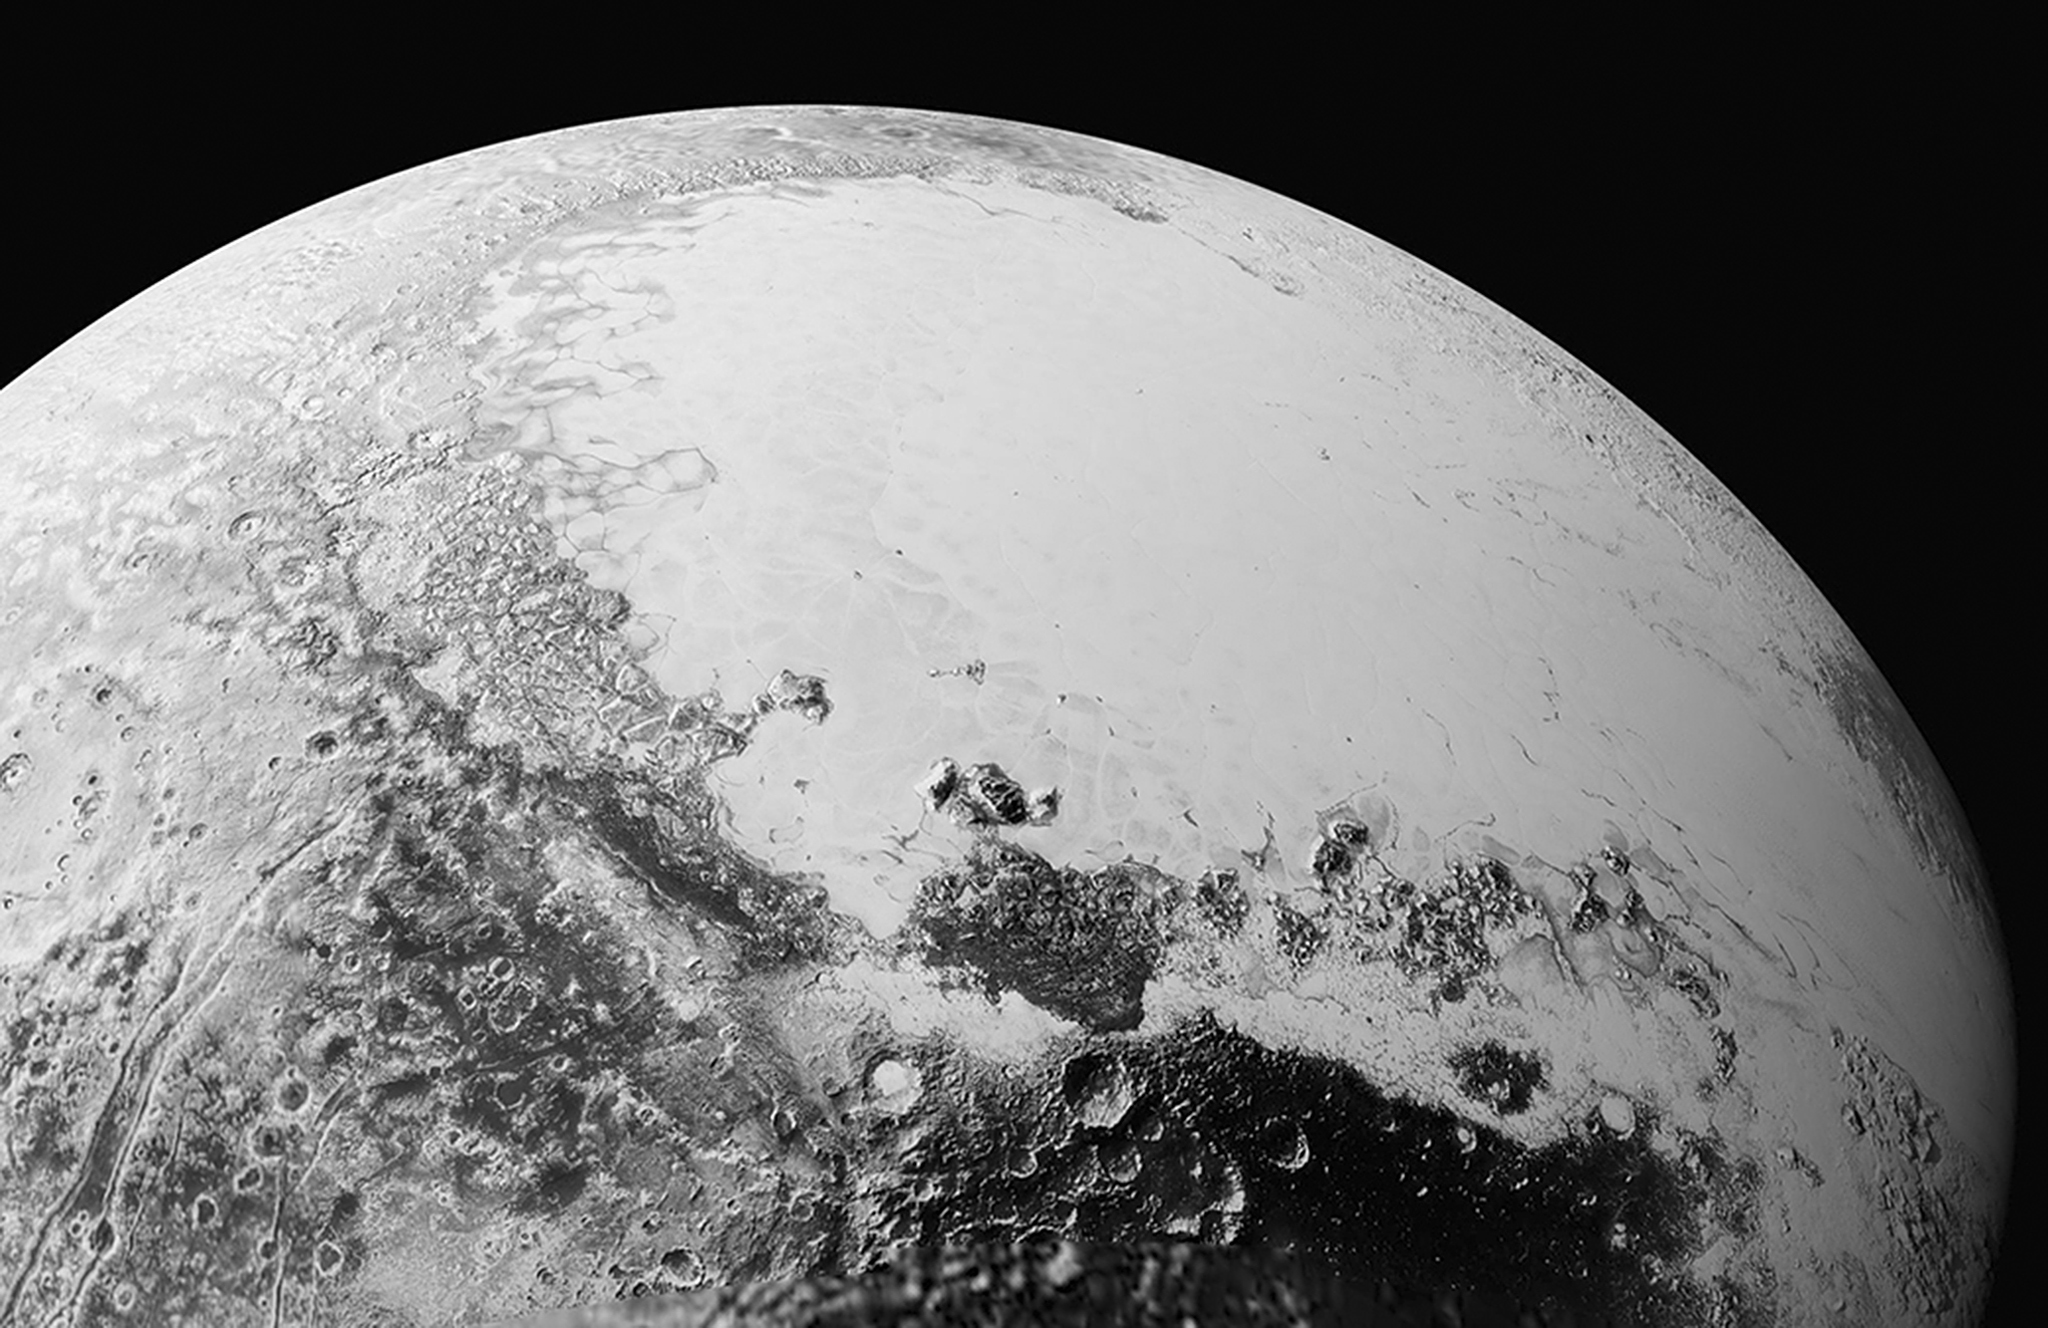 Startling images of Pluto from New Horizons...SOL SYSTEM Pluto -- 11 Sep 2015 -- This synthetic perspective view of Pluto, based on the latest high-resolution images to be downlinked from NASAís New Horizons spacecraft, shows what you would see if you were approximately 1,100 miles (1,800 kilometers) above Plutoís equatorial area, looking northeast over the dark, cratered, informally named Cthulhu Regio toward the bright, smooth, expanse of icy plains informally called Sputnik Planum. The entire expanse of terrain seen in this image is 1,100 miles (1,800 kilometers) across. The images were taken as New Horizons flew past Pluto on July 14, 2015, from a distance of 50,000 miles (80,000 kilometers) -- Picture by Atlas Photo Archive/JHUAPL/SwRI/NASA